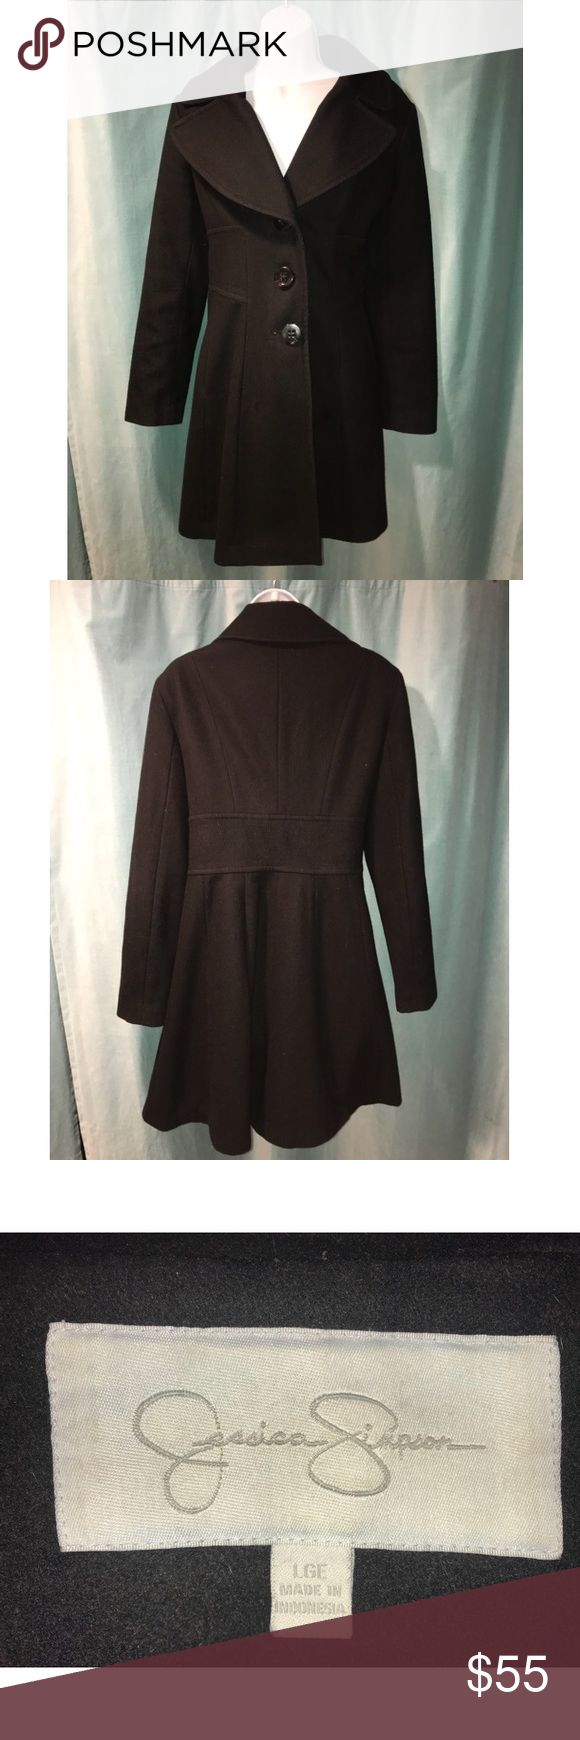 Jessica Simpson Wool Blend Black Coat Sz Large Gorgeous button down wool coat. Super warm and comfortable! Coat has a subtle flare at the bottom for a little bit of classy sass! Perfect for any fashionista💓 Jessica Simpson Jackets & Coats Pea Coats